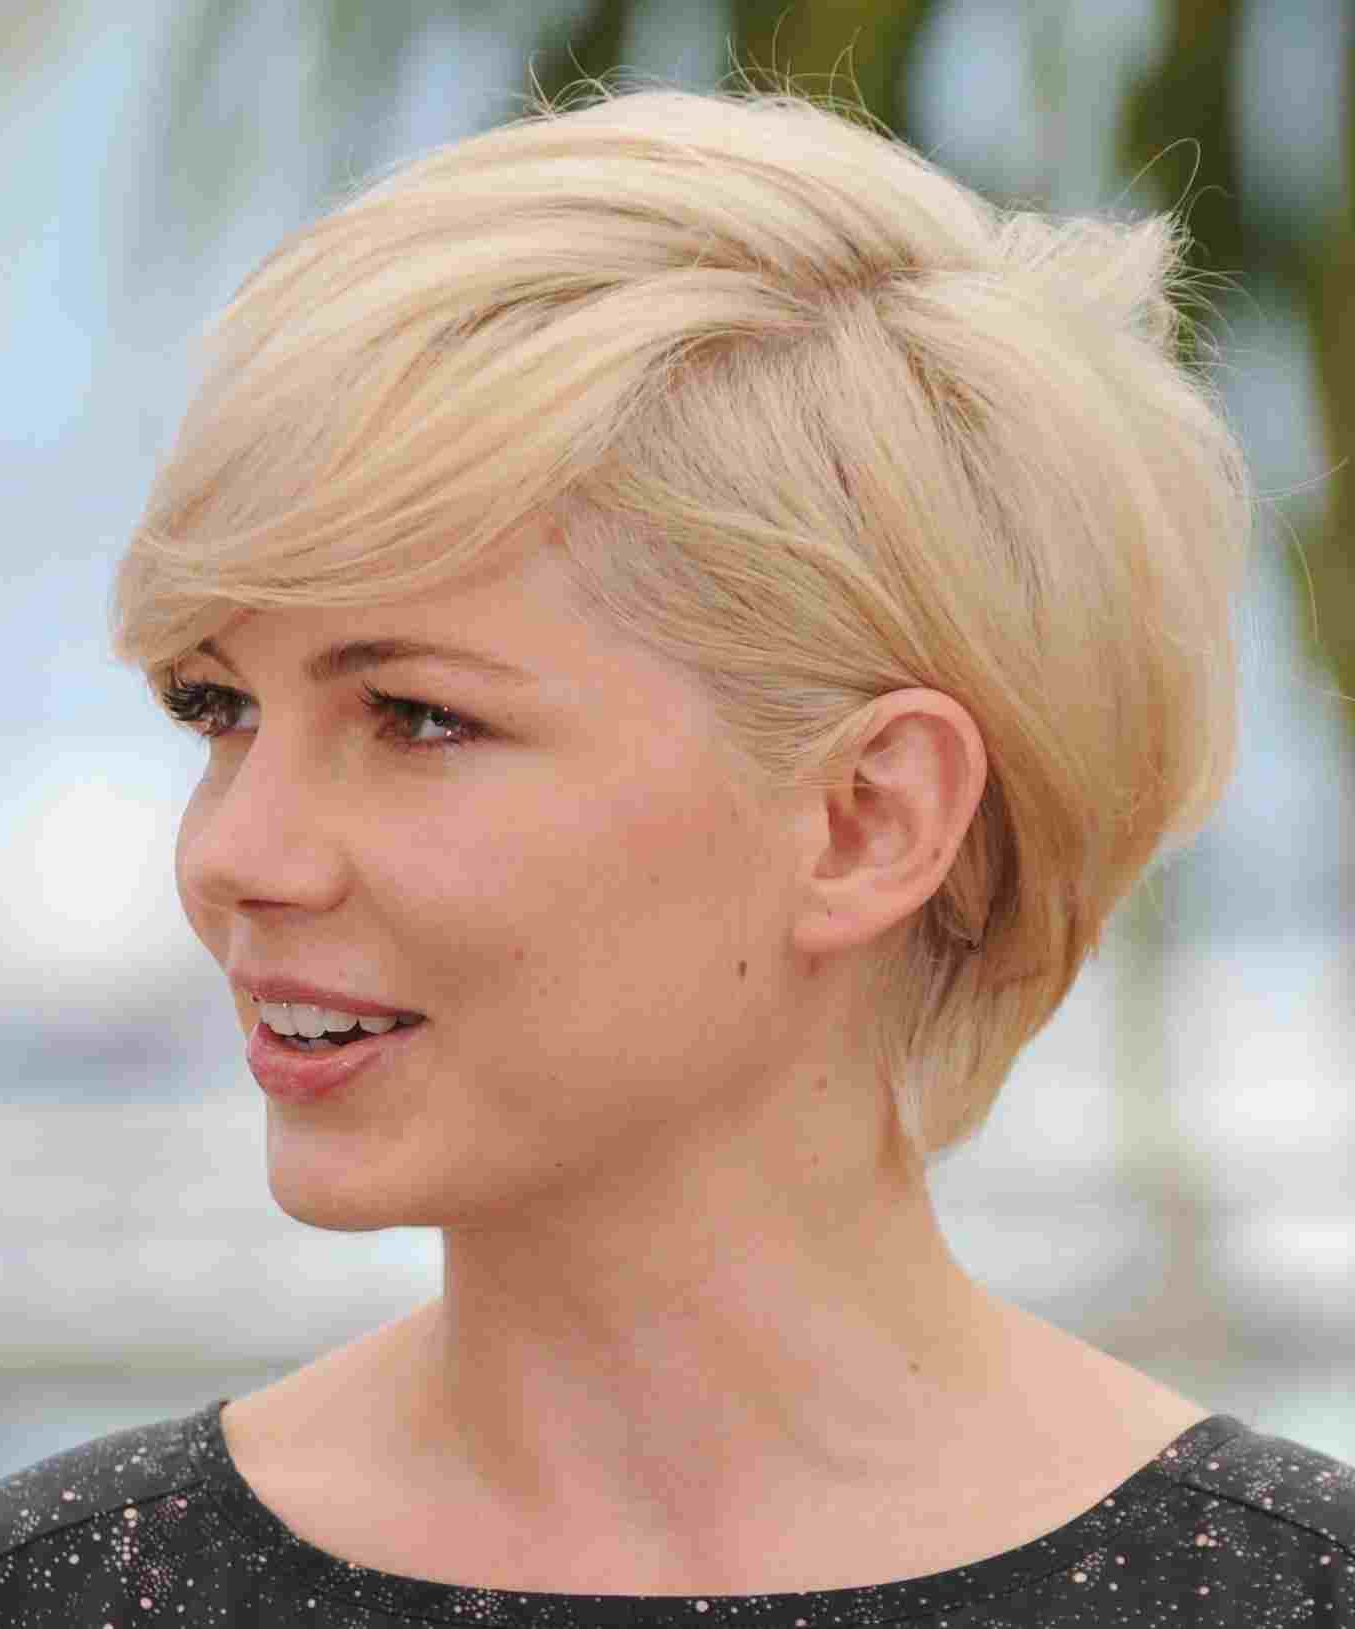 Rhromvinfo Best Ladies Short Haircuts For Thick Hair Of Stunning Throughout Pixie Haircuts With Short Thick Hair (View 16 of 20)